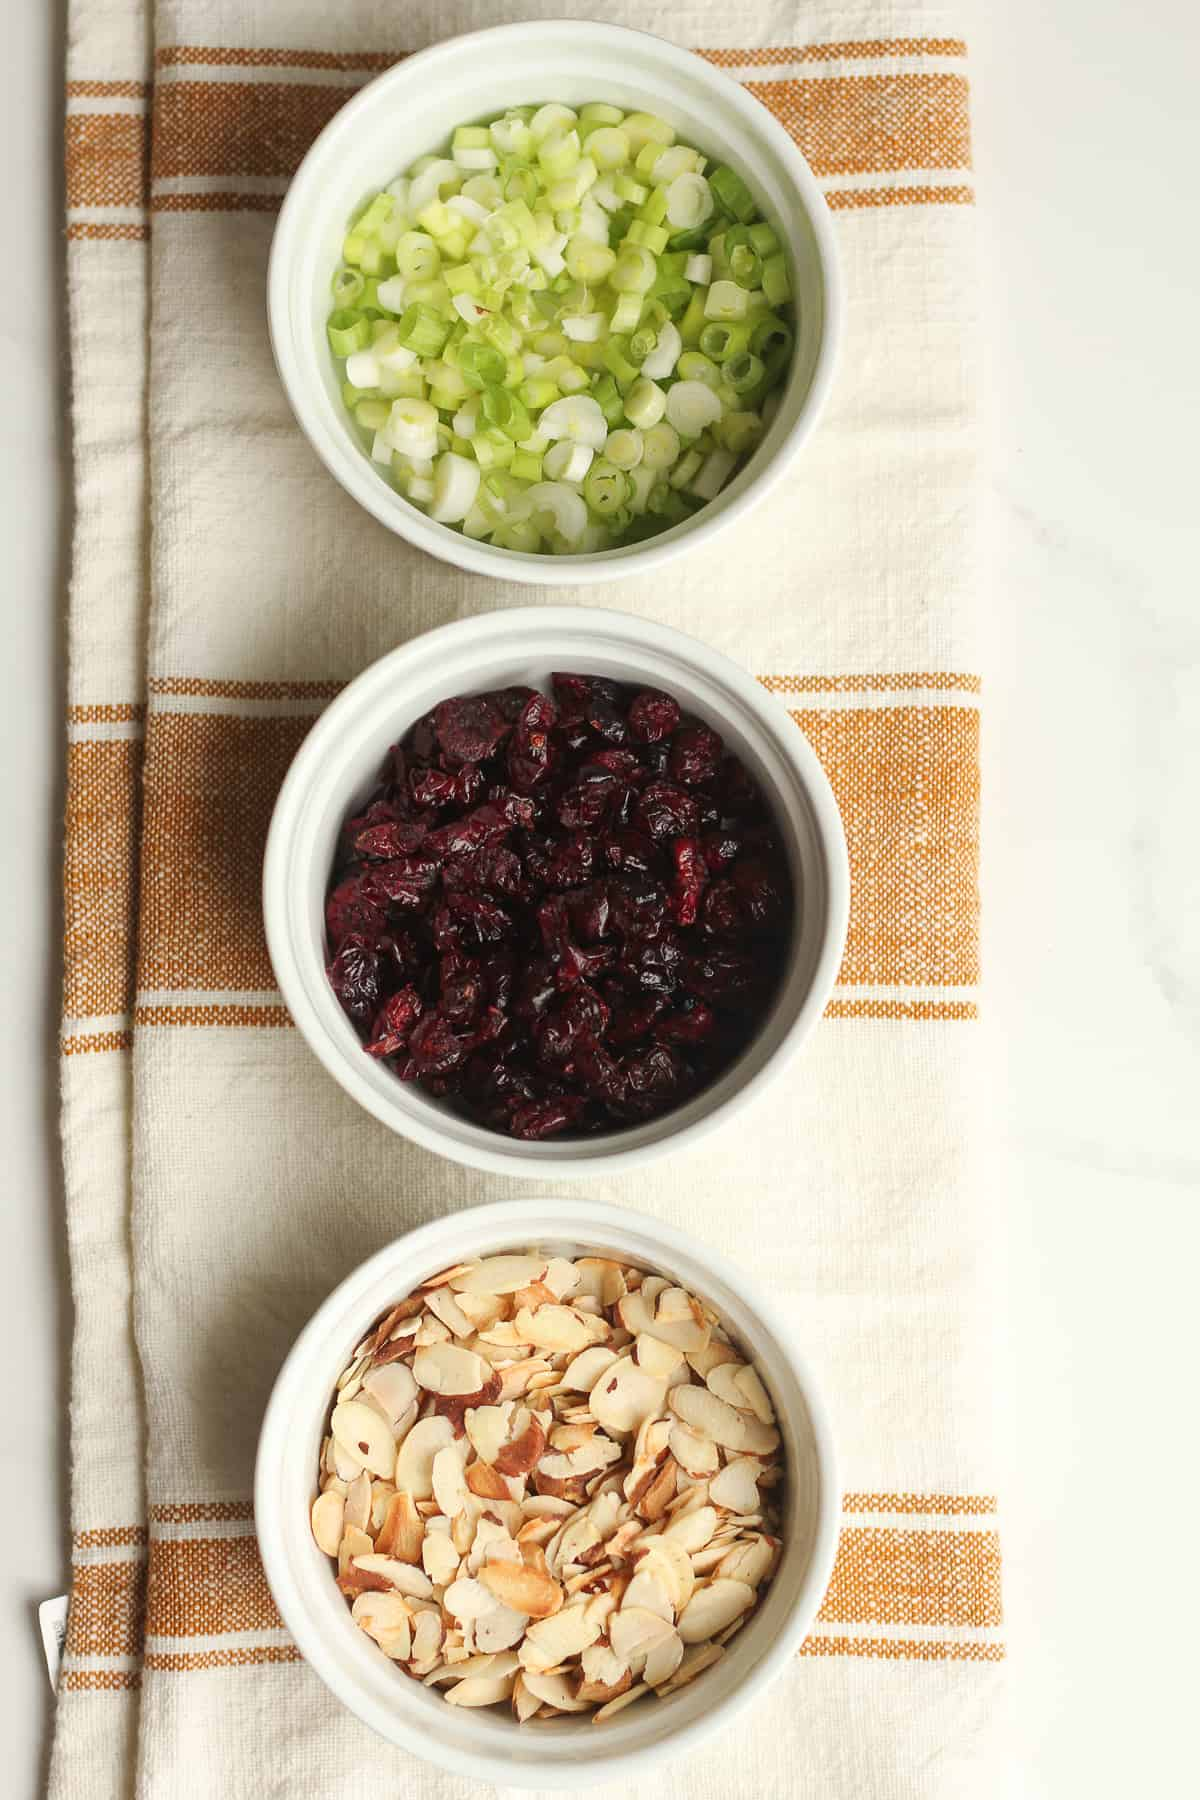 Three bowls of green onion, cranberries, and shaved almonds.